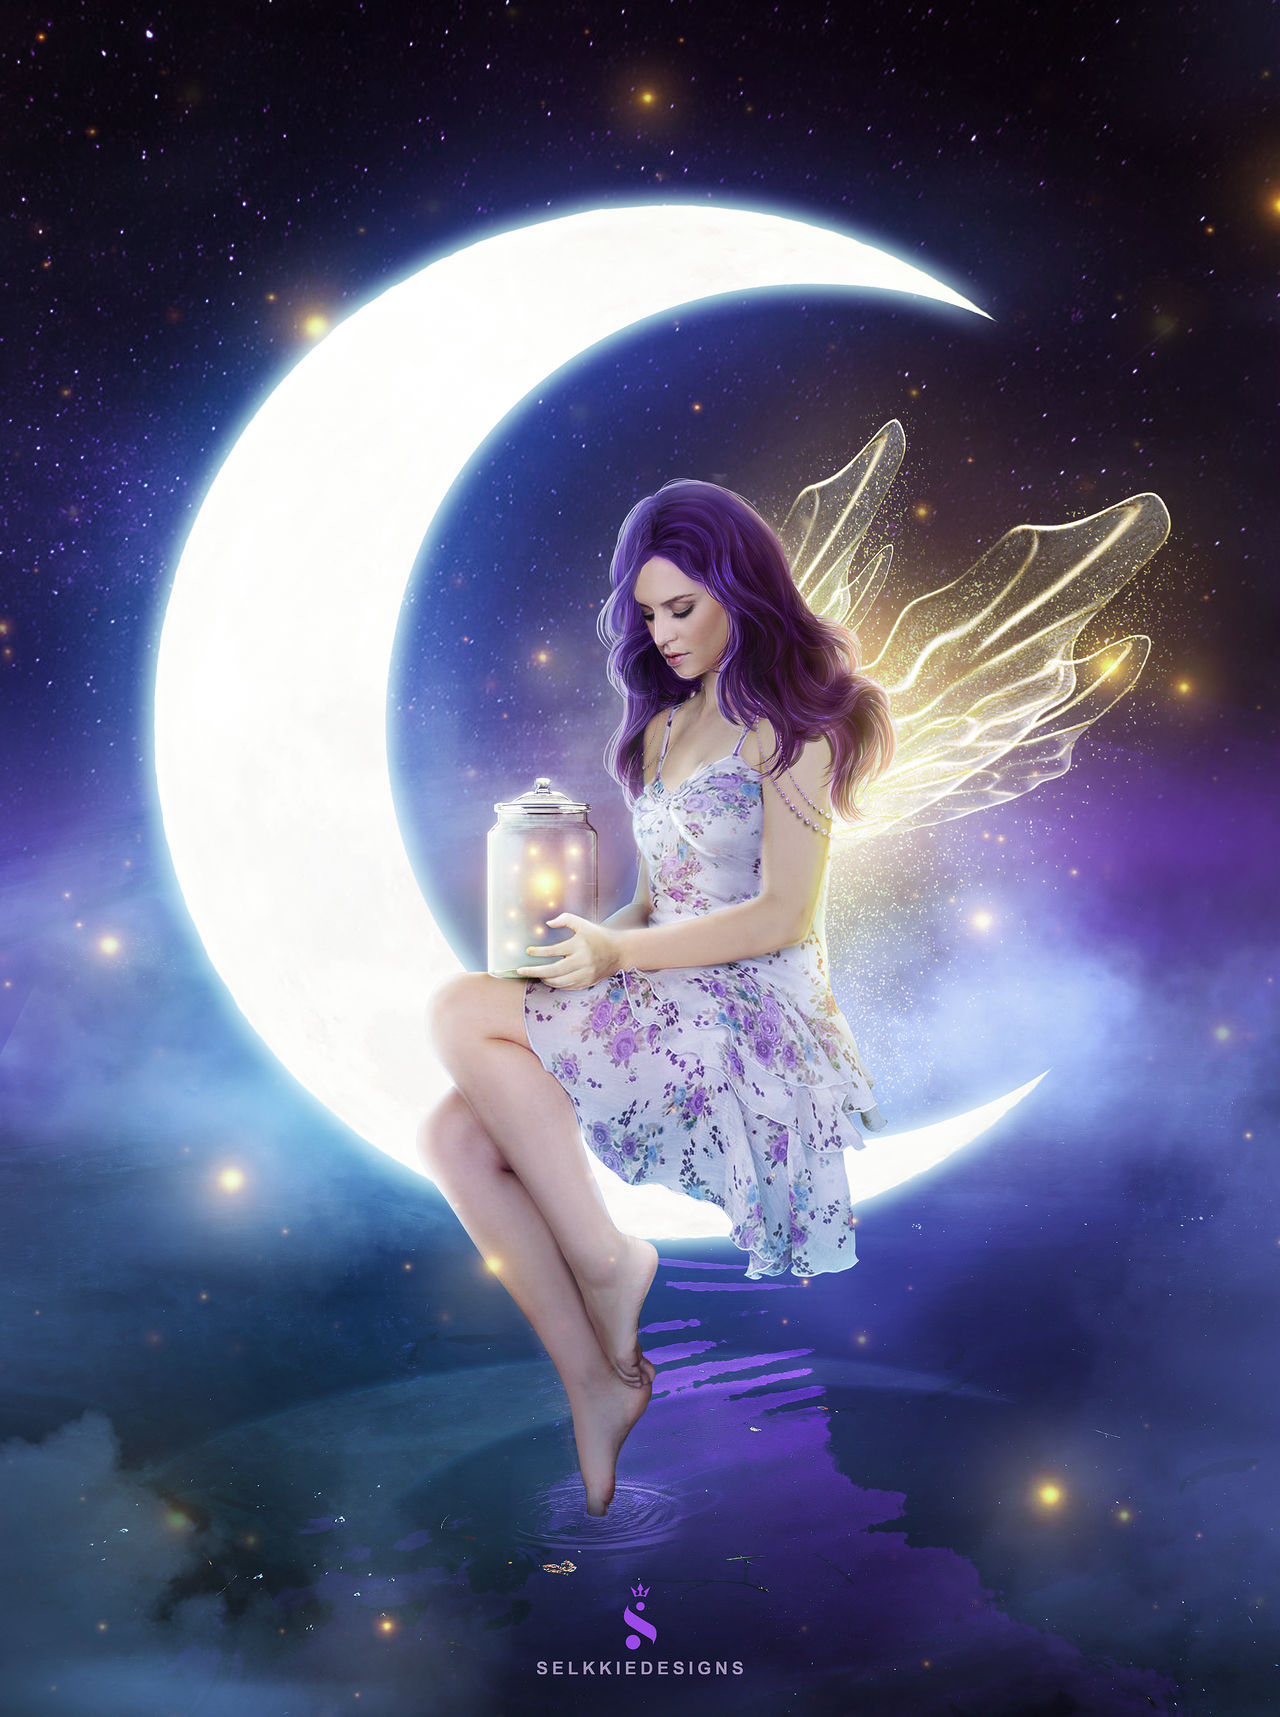 MOONLIGHT FAIRY - MANIPULATION